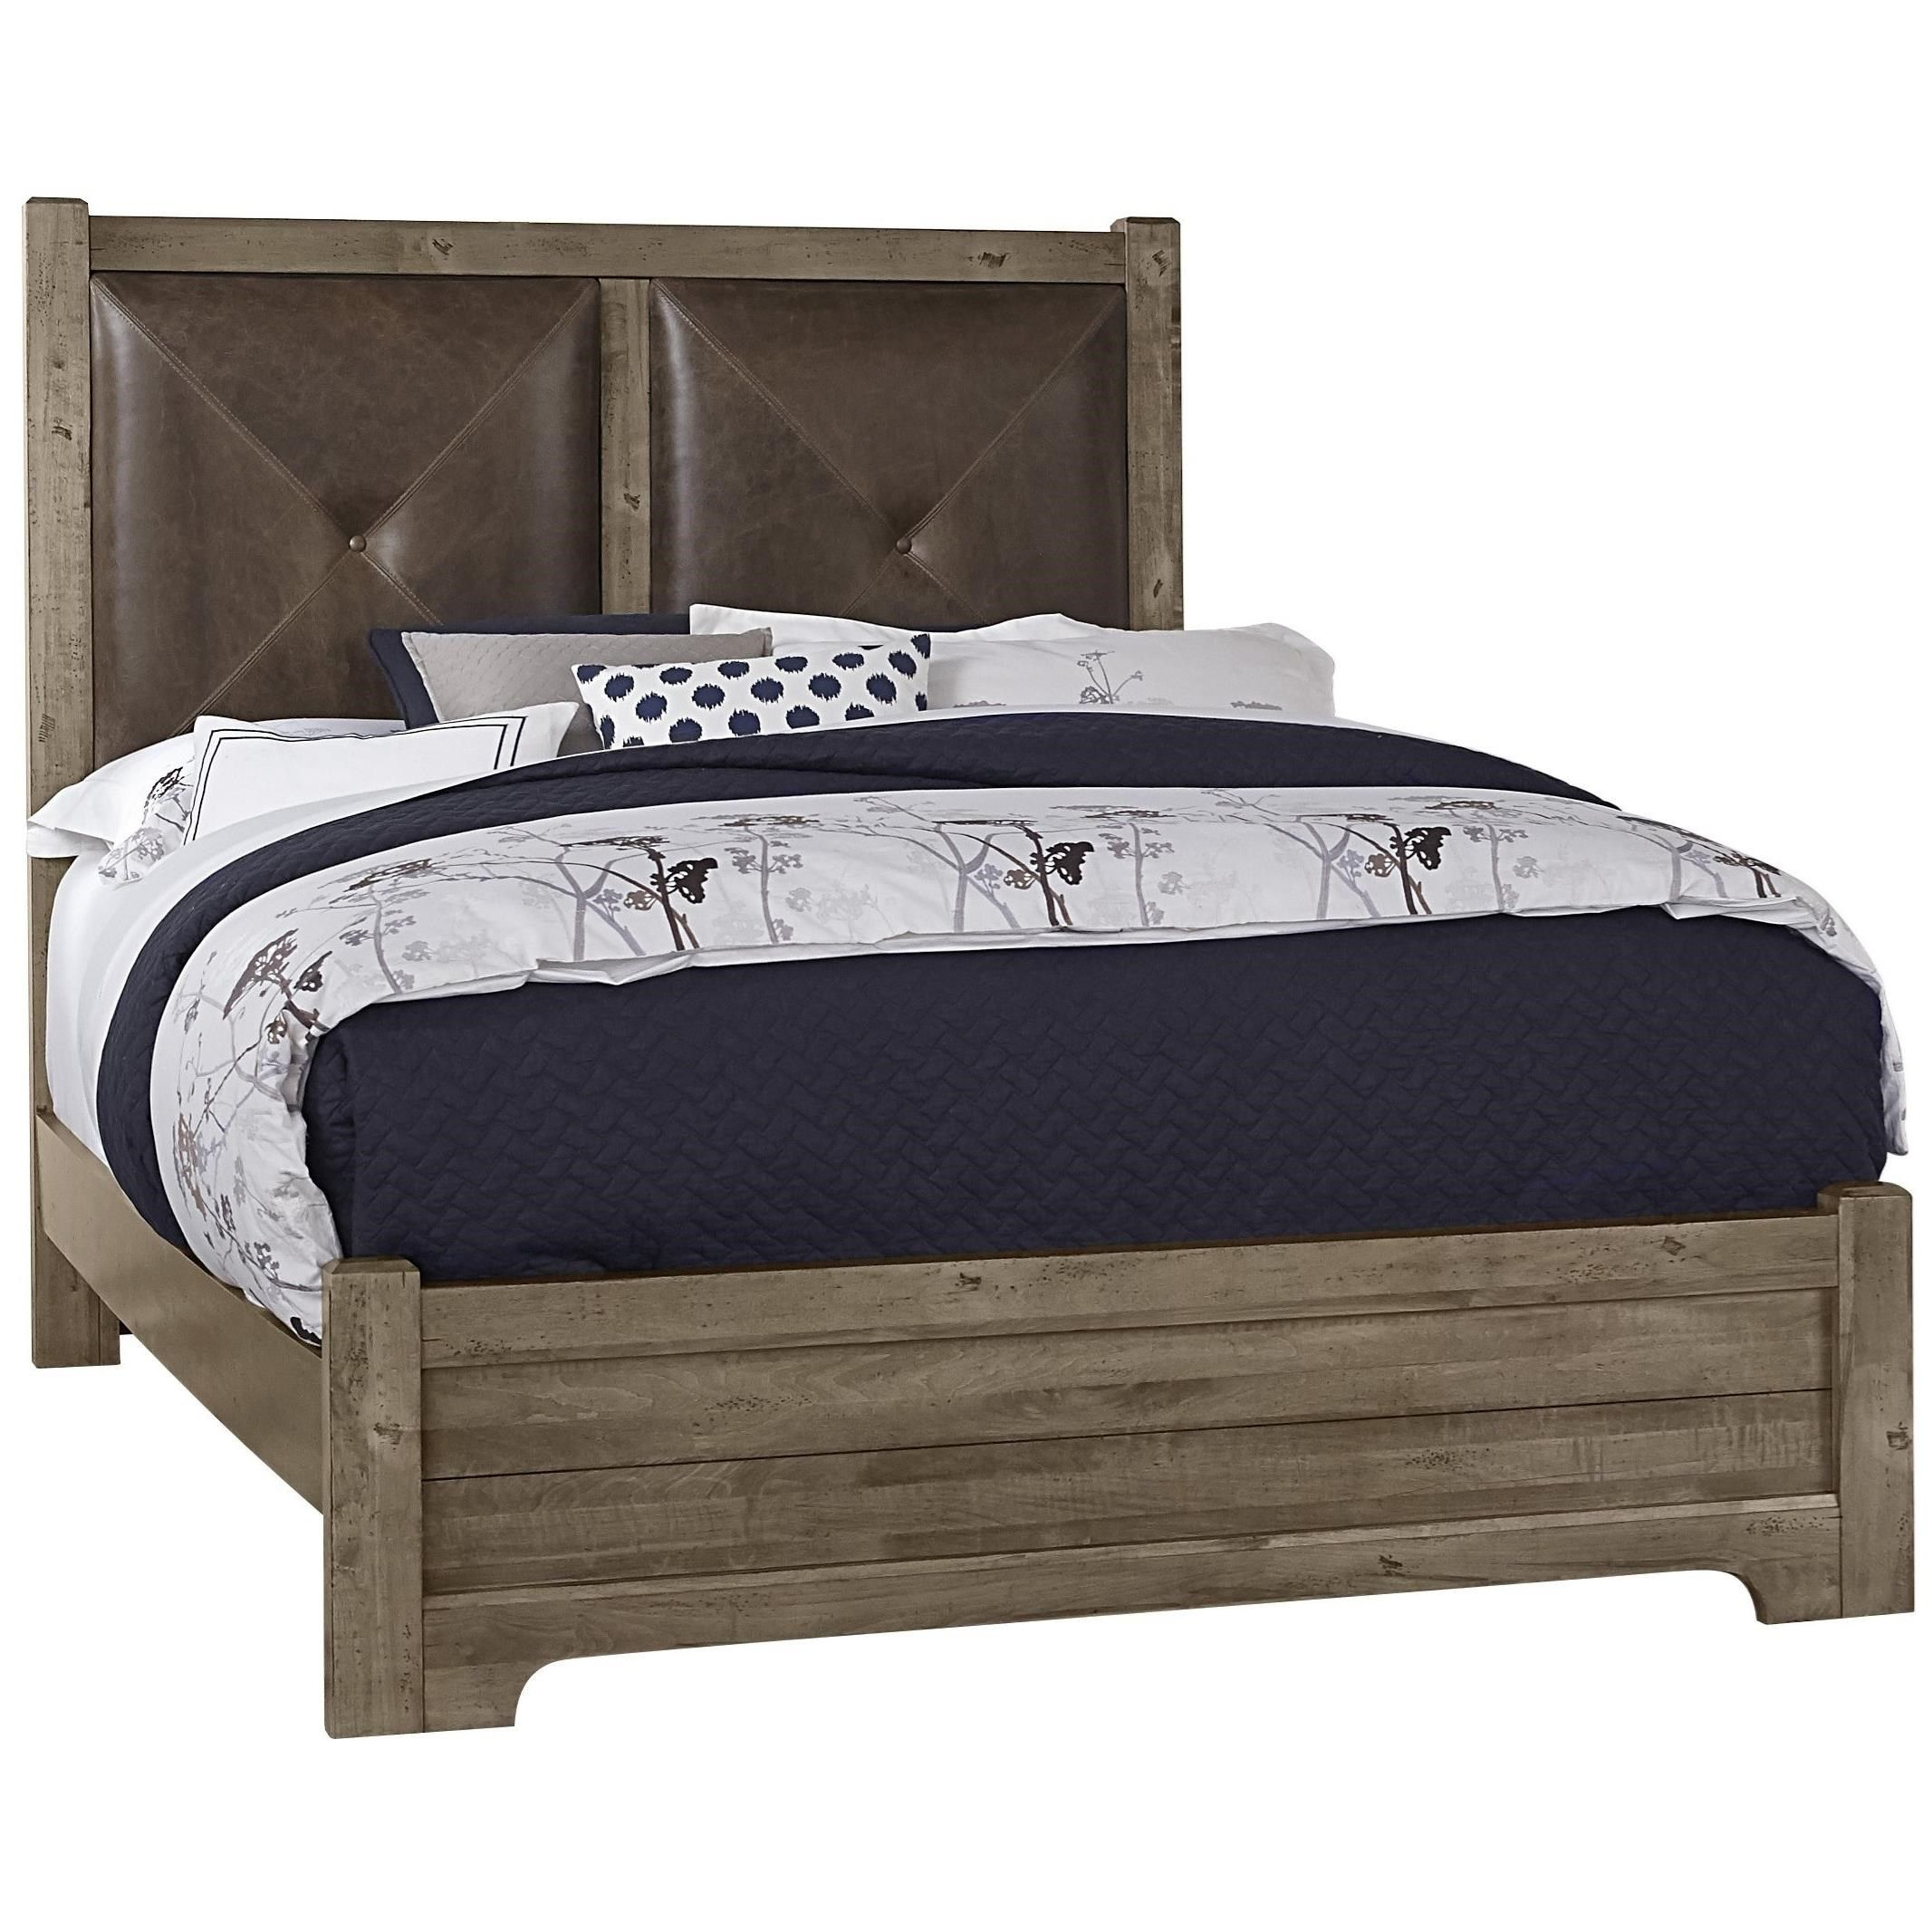 Cool Rustic King Leather Headboard Bed By Artisan Leather Headboard Queen Upholstered Bed Furniture